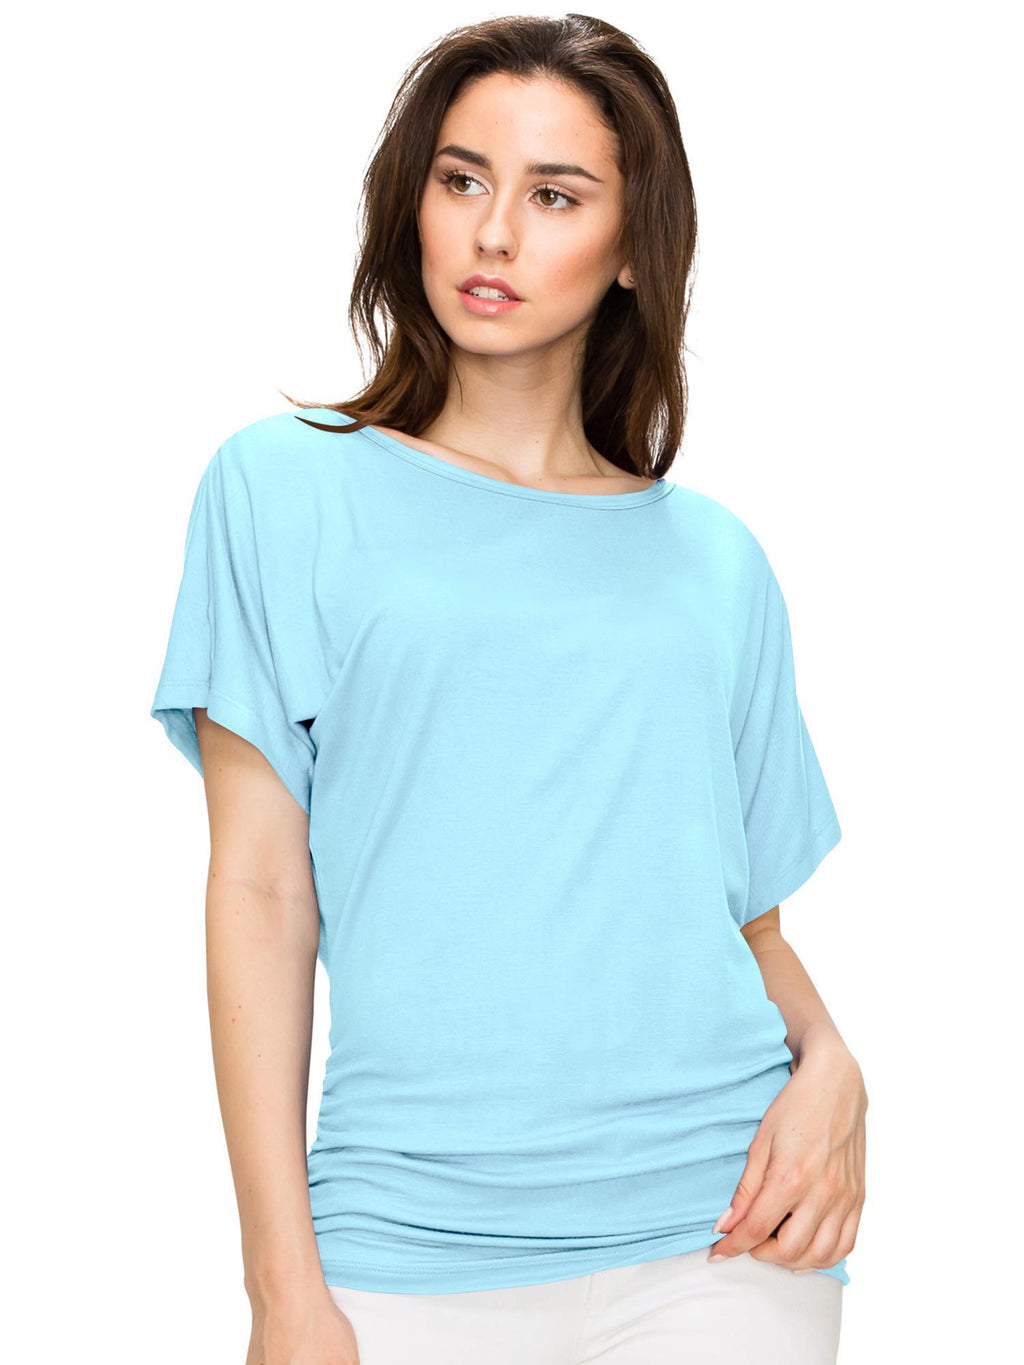 Women's Solid Short Sleeve Boat Neck V Neck Dolman Top - DAILYHAUTE